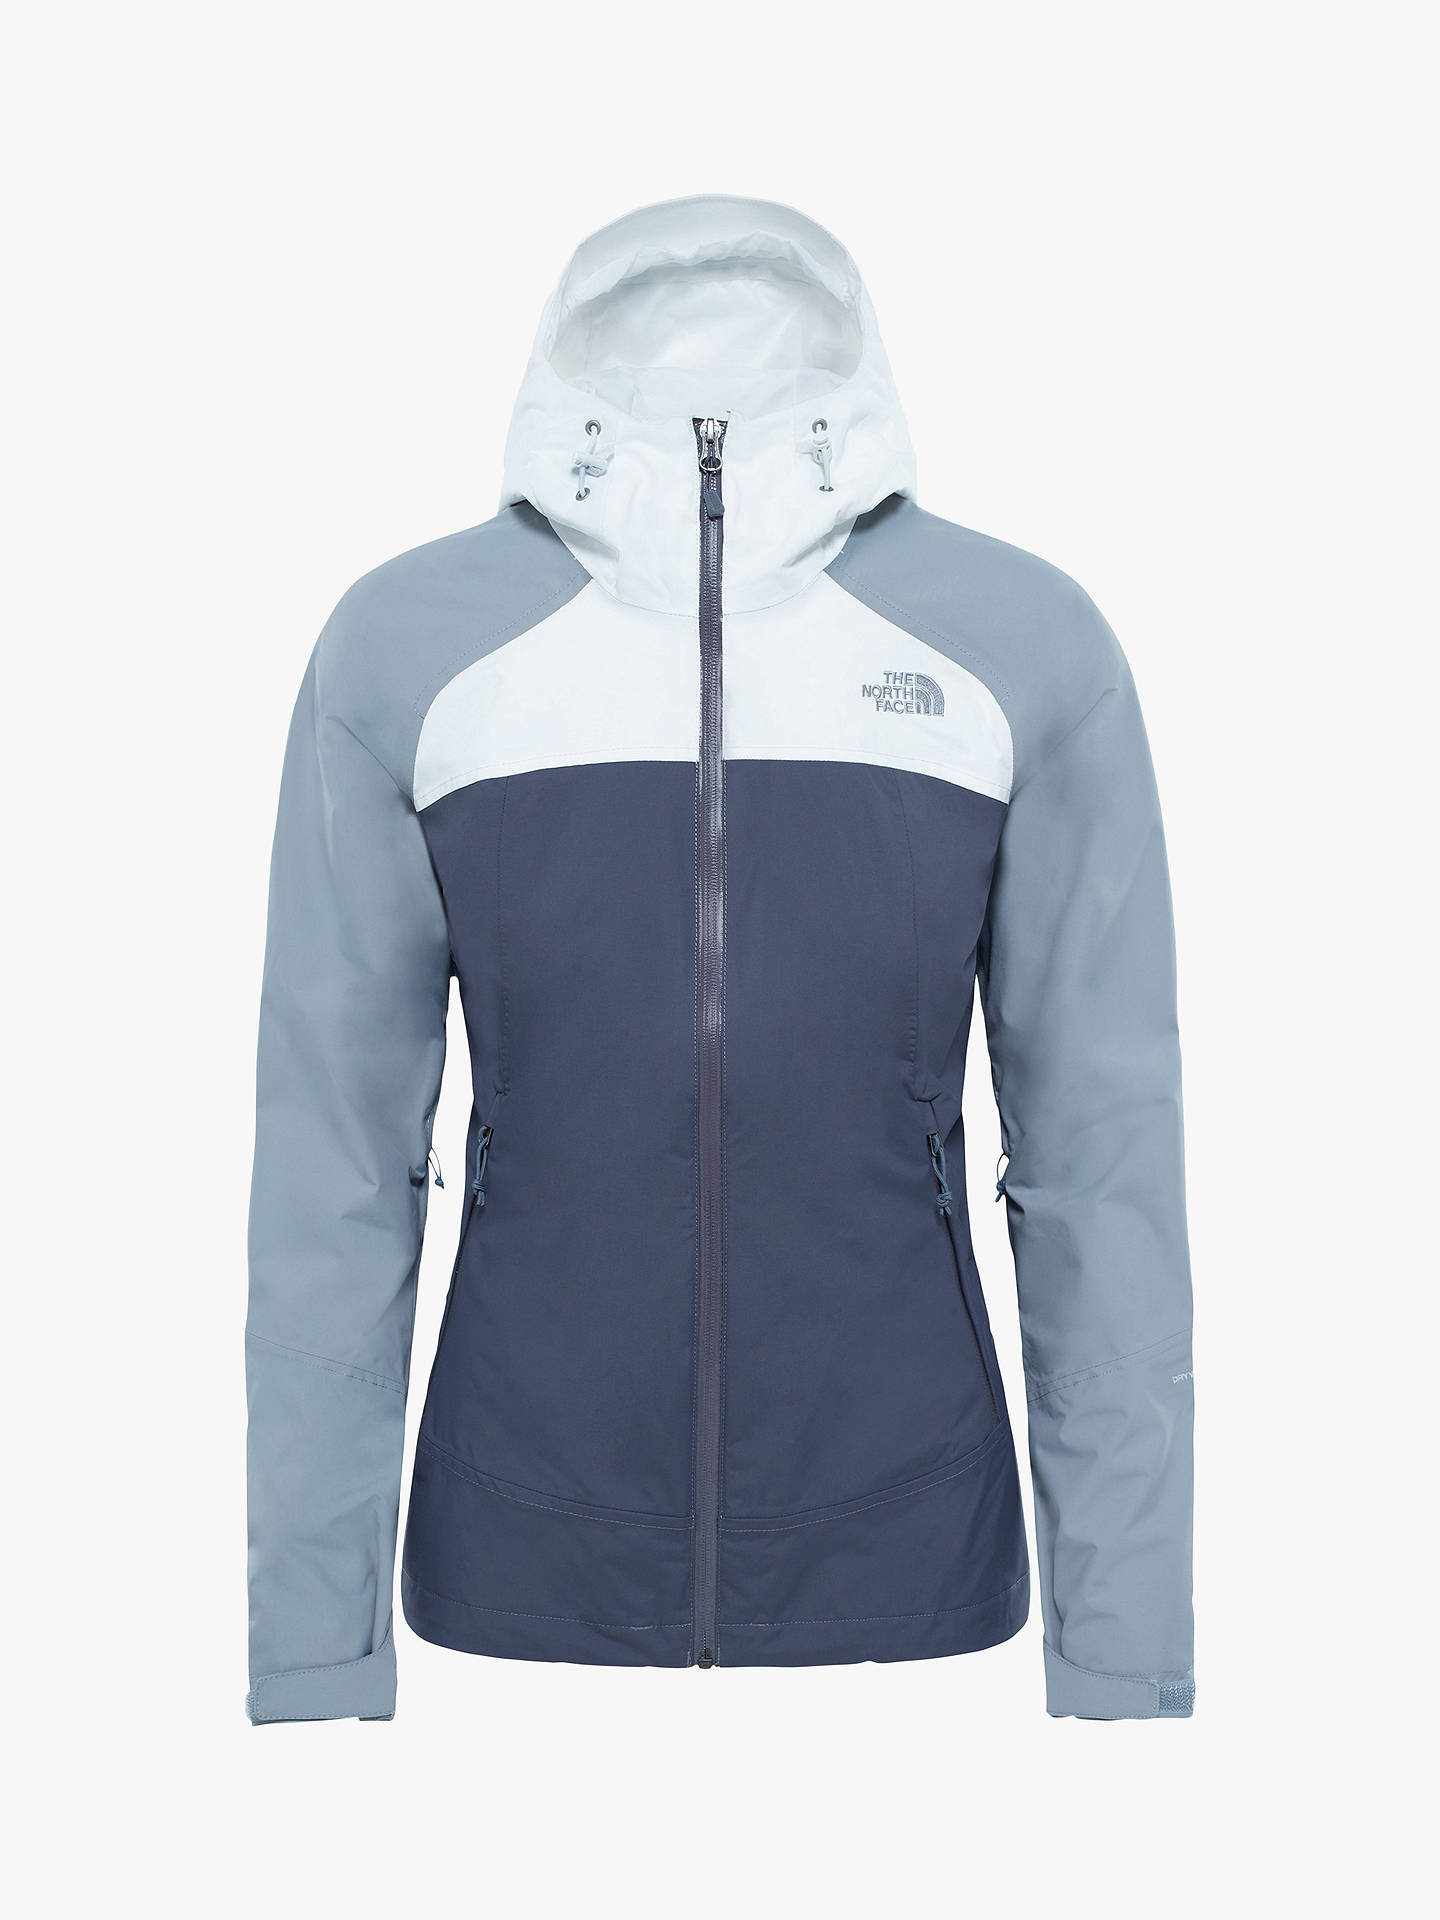 popular design fine craftsmanship delicate colors The North Face Stratos Women's Waterproof Jacket, Vanadis ...